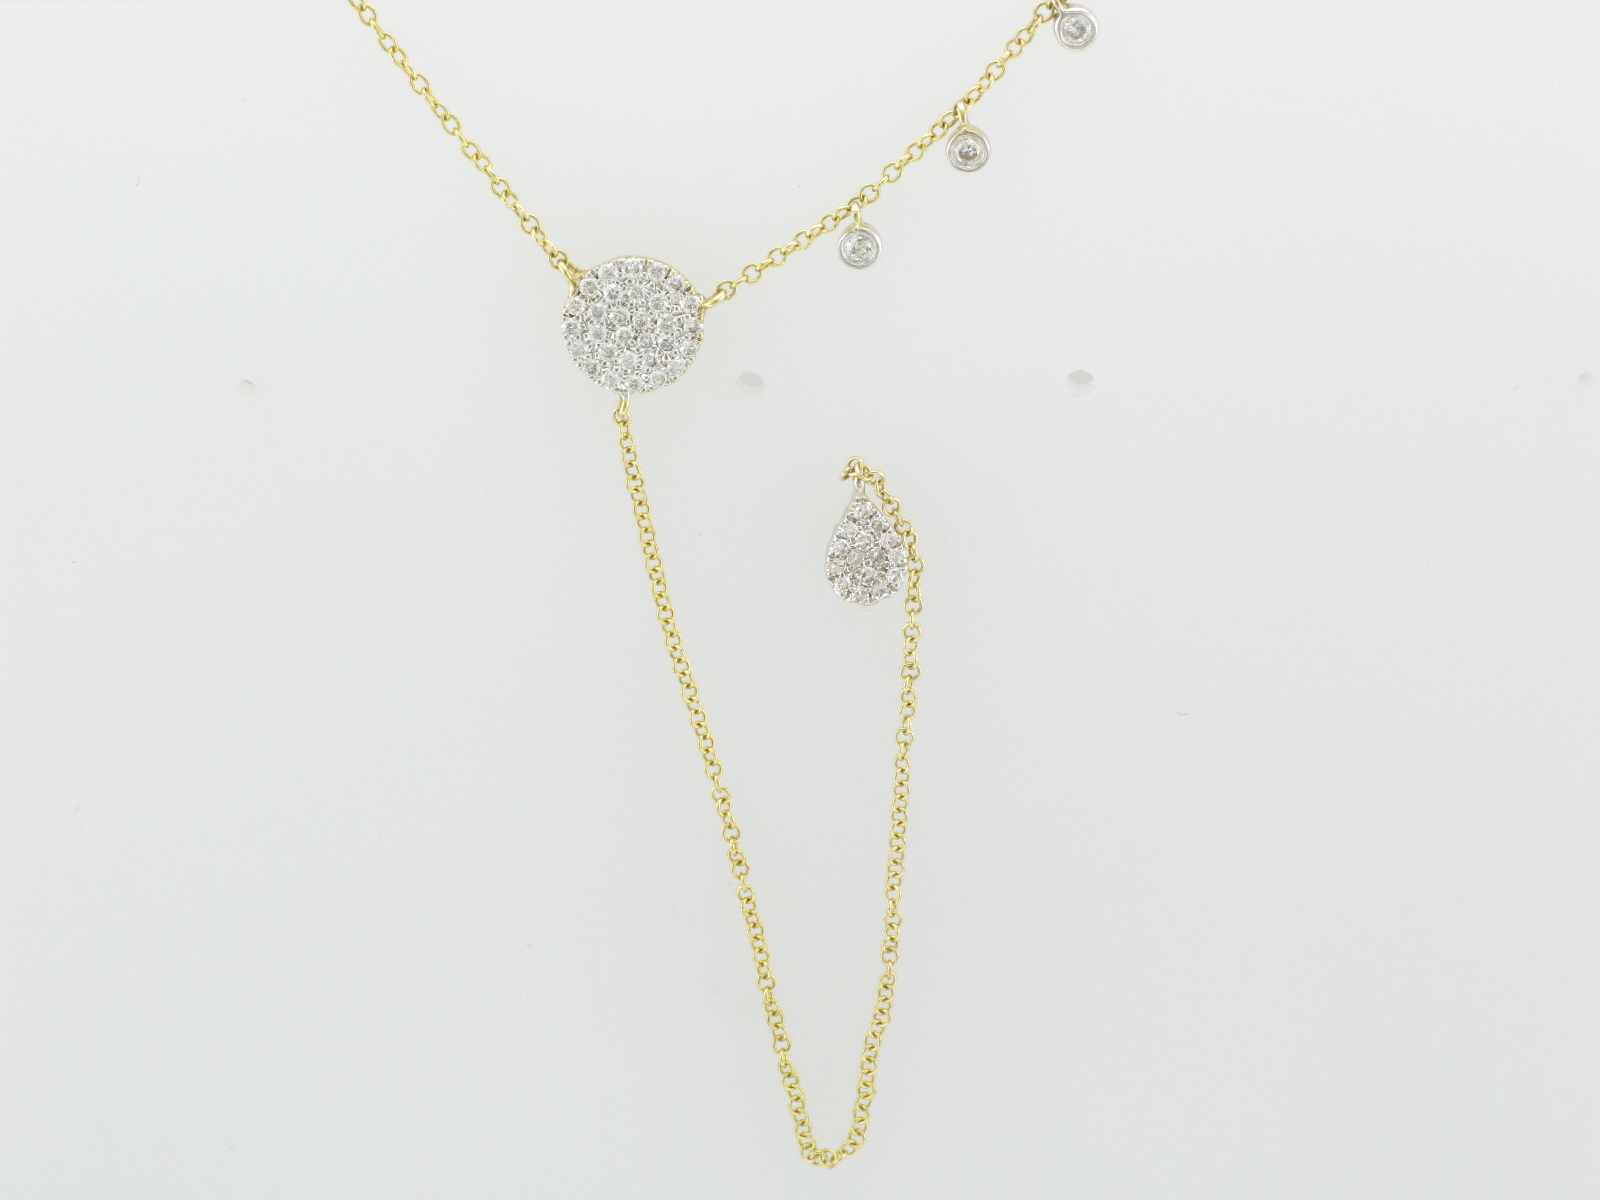 Dangling Pave Disk Necklace